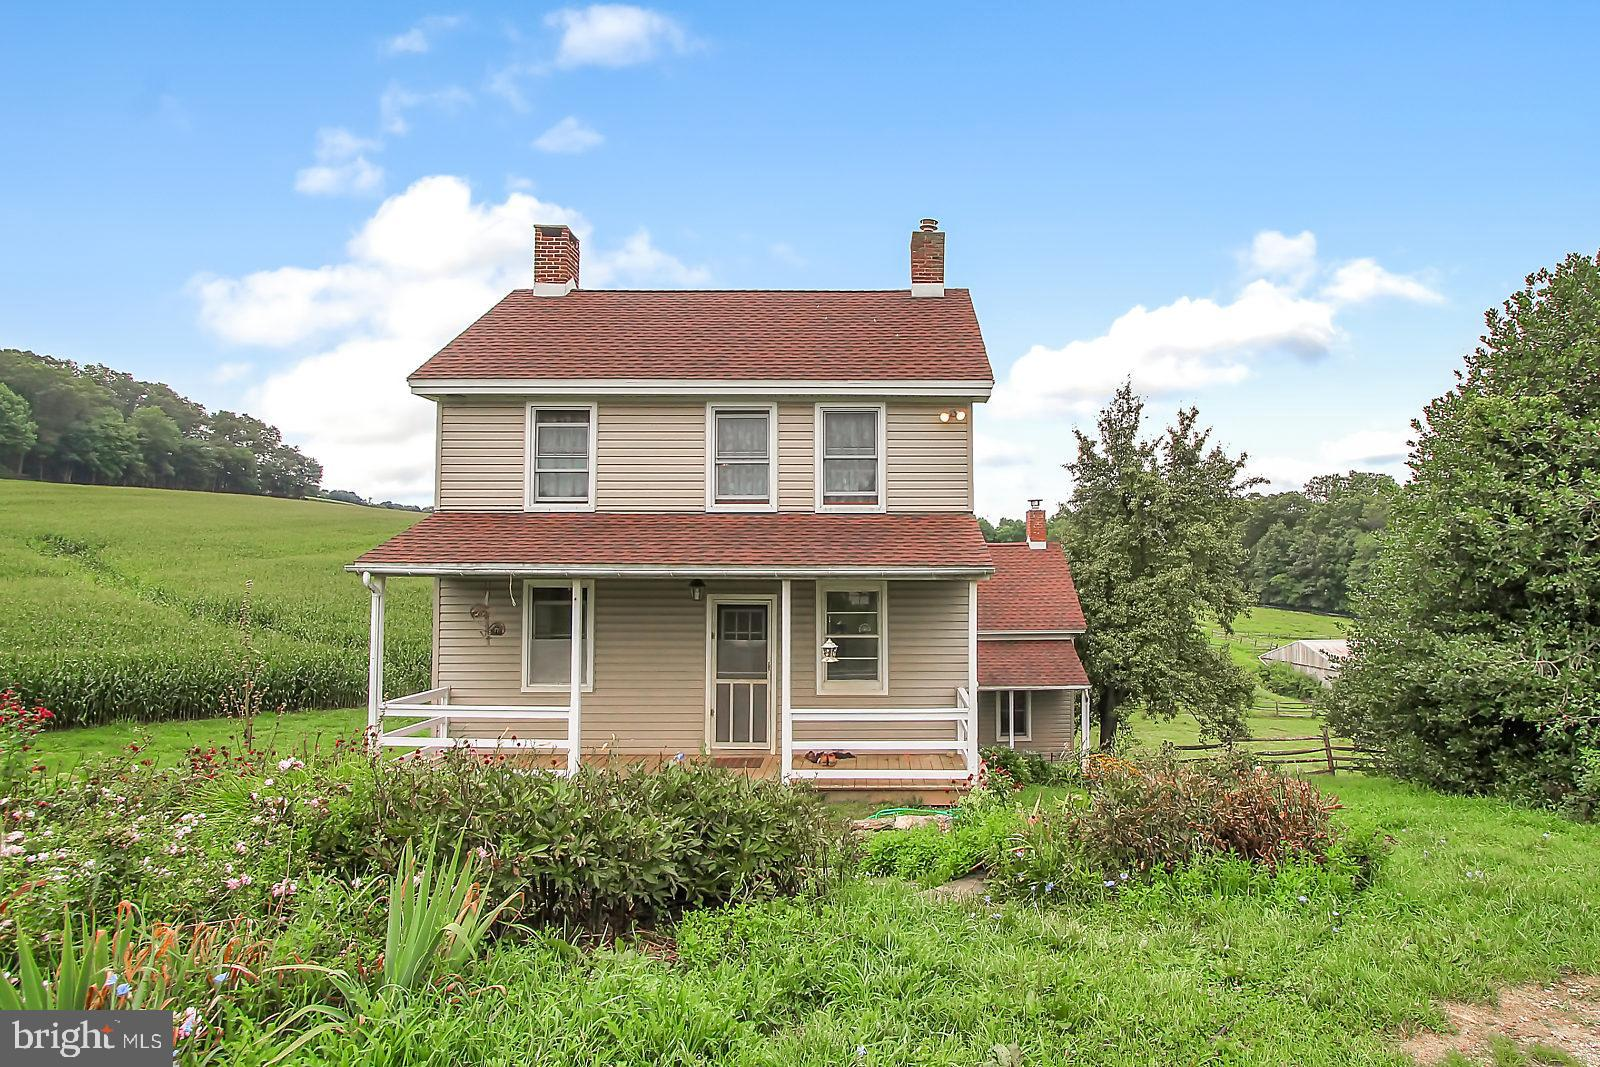 9856 HOLLY HILL LANE, NEW FREEDOM, PA 17349